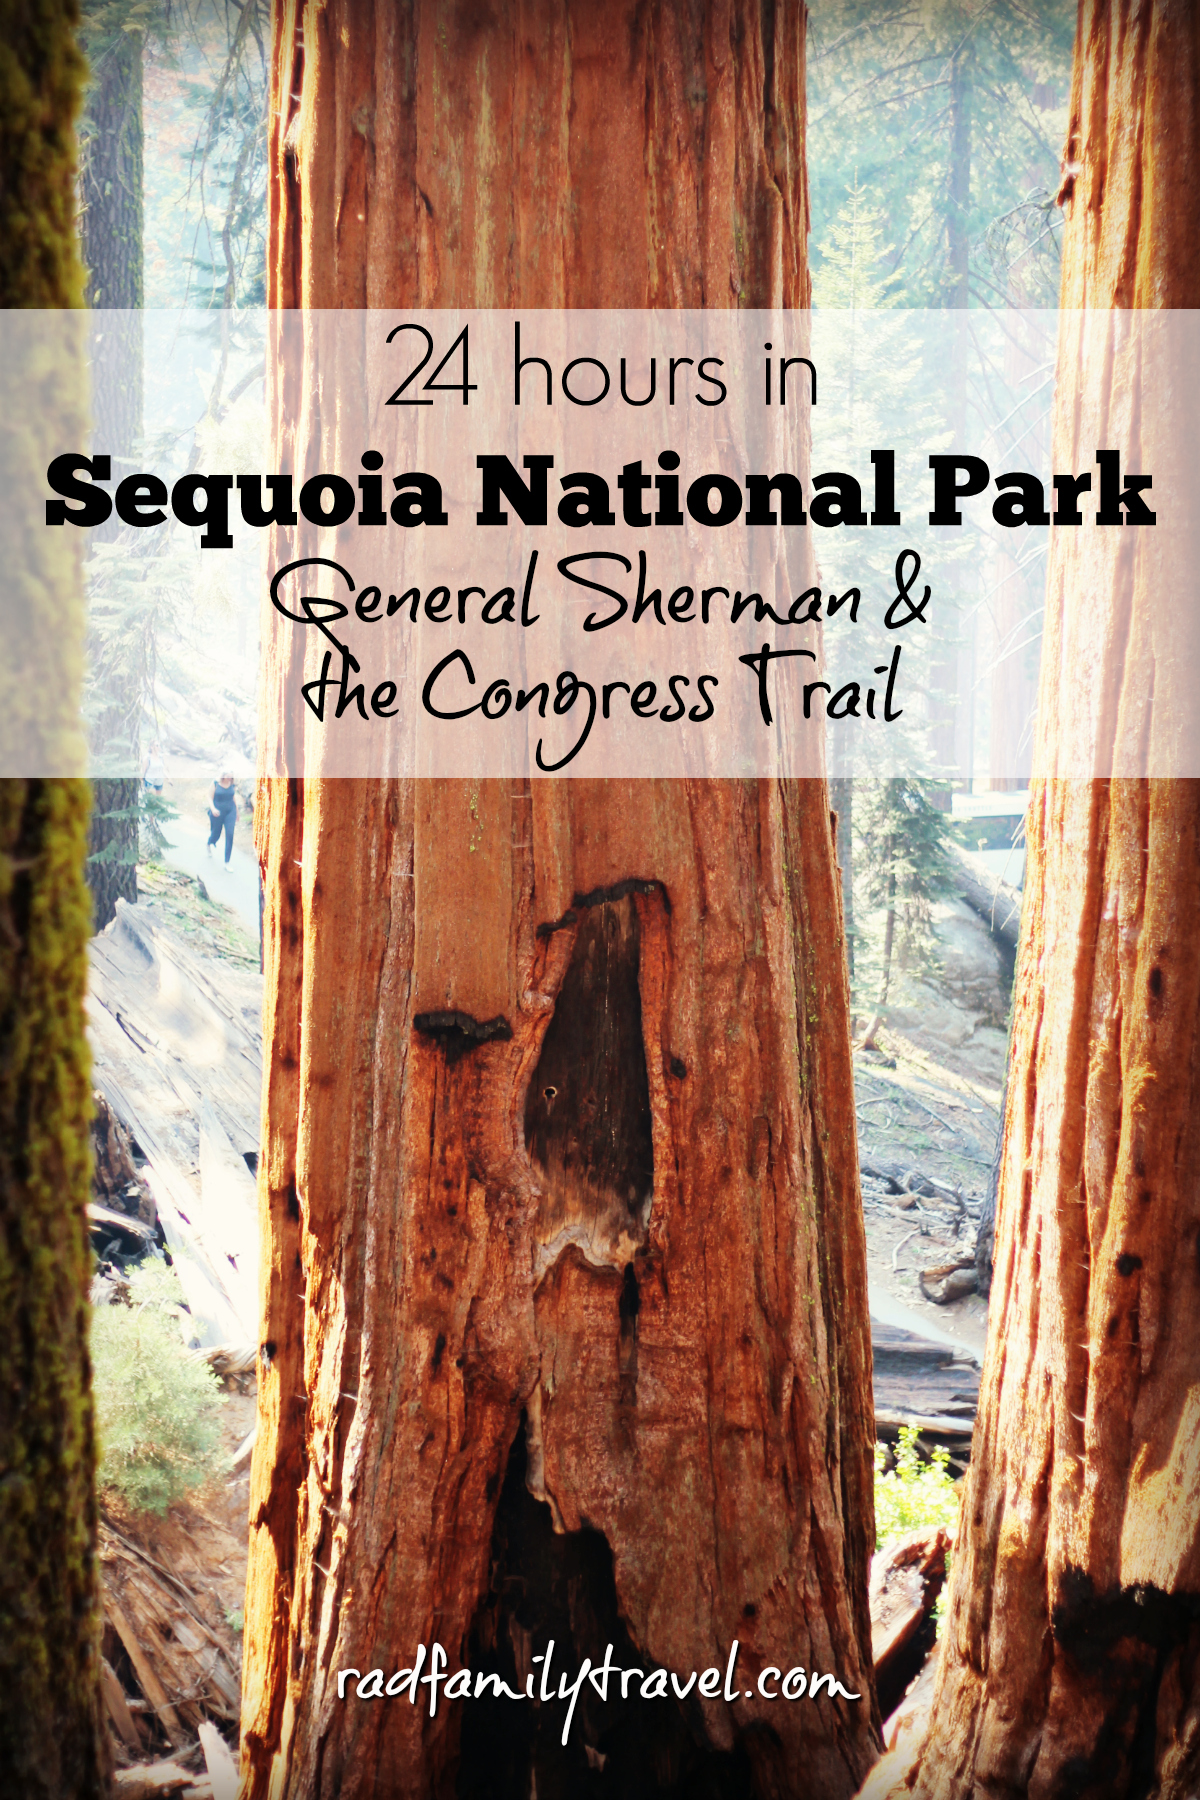 day-trip-sequoia-national-park-with-kids